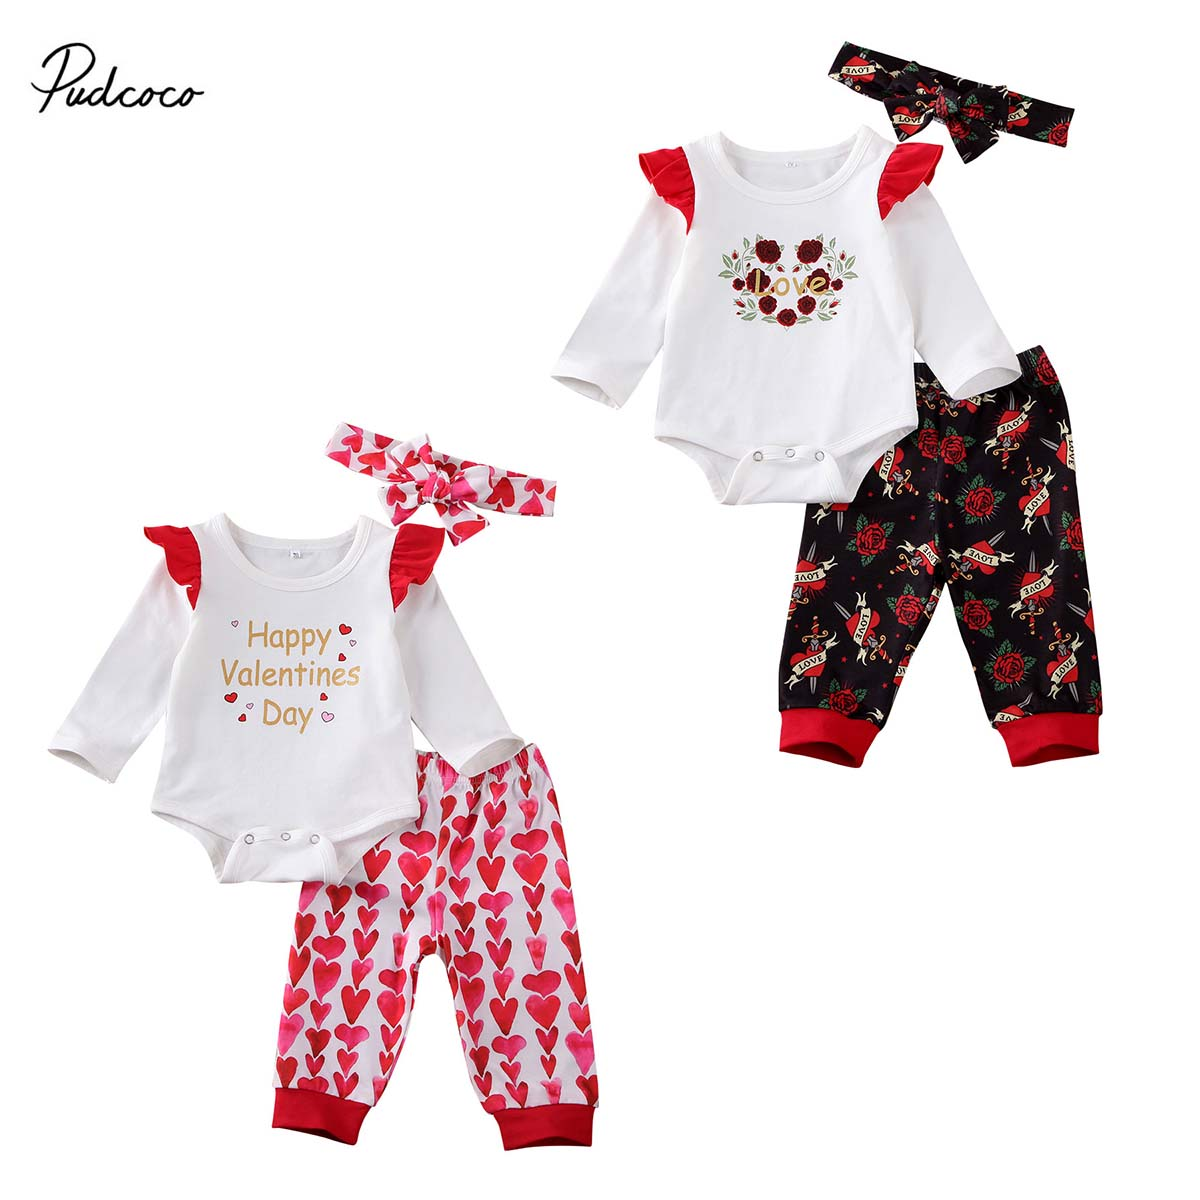 Valentines Day Baby Girl Clothes Ruffle Long Sleeve Top Love Print Pants with Headband Outfits Set Red